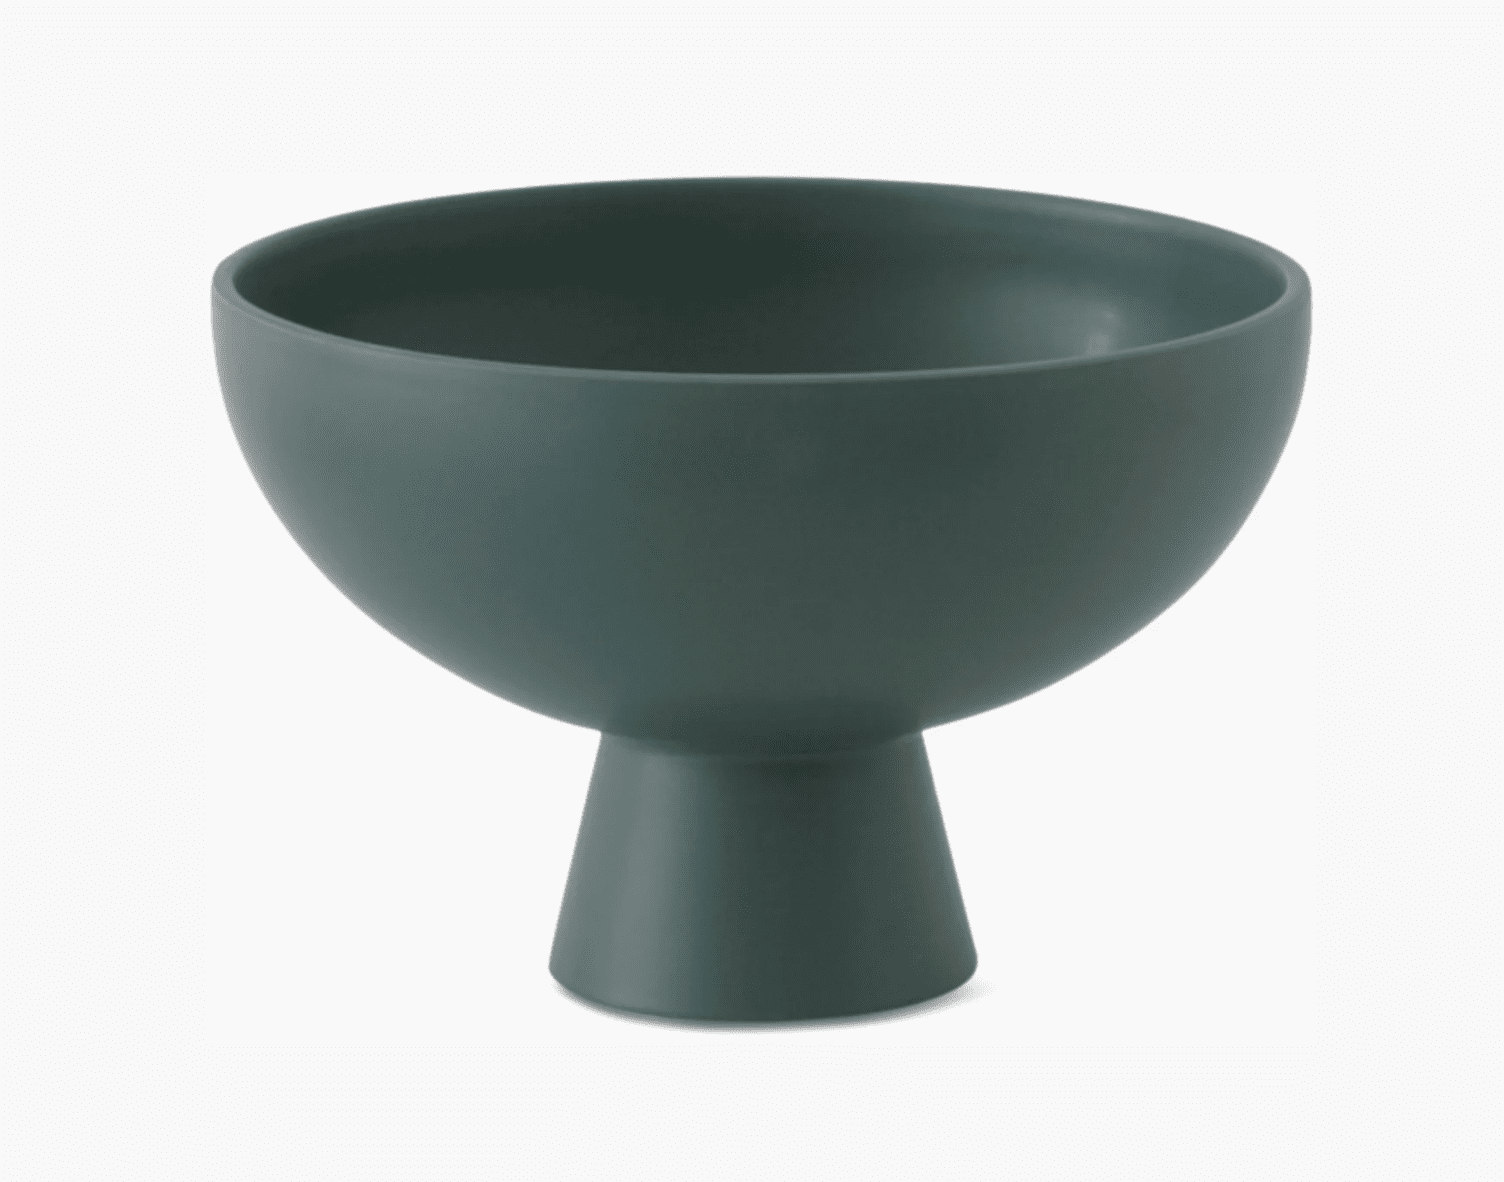 A large green vase, currently for sale at Design Within Reach